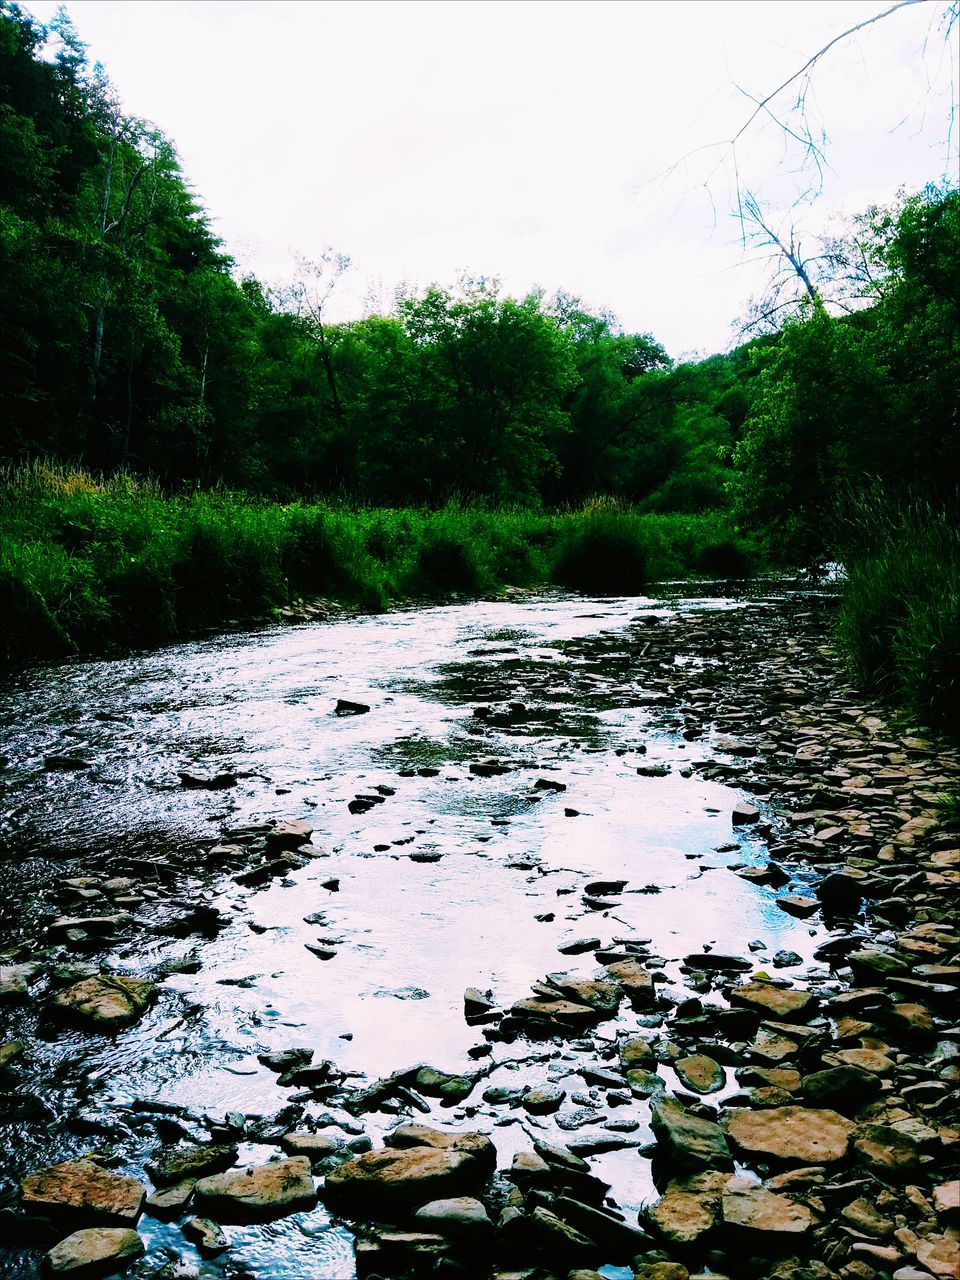 tree, nature, water, growth, stream, tranquility, forest, no people, day, scenics, tranquil scene, outdoors, beauty in nature, landscape, sky